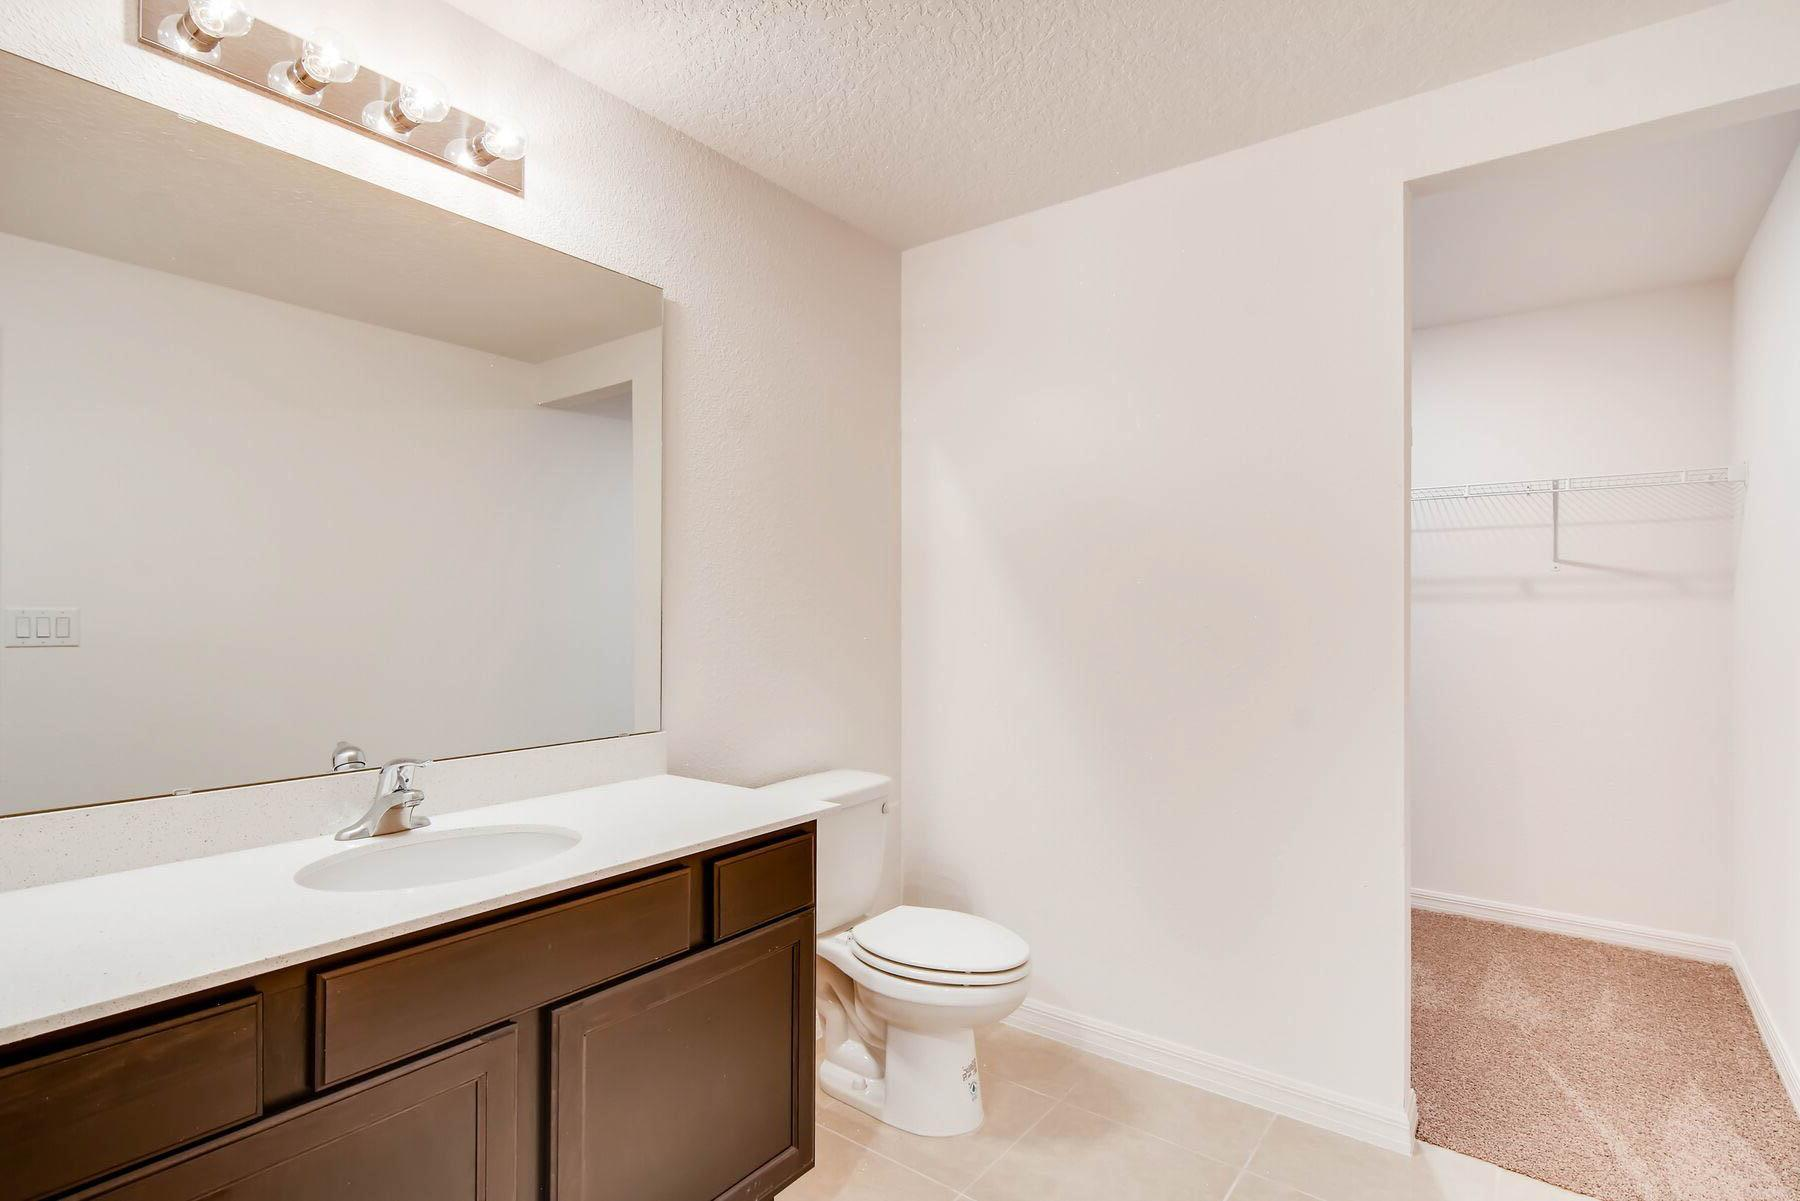 Bathroom featured in the Brickell By LGI Homes in Melbourne, FL